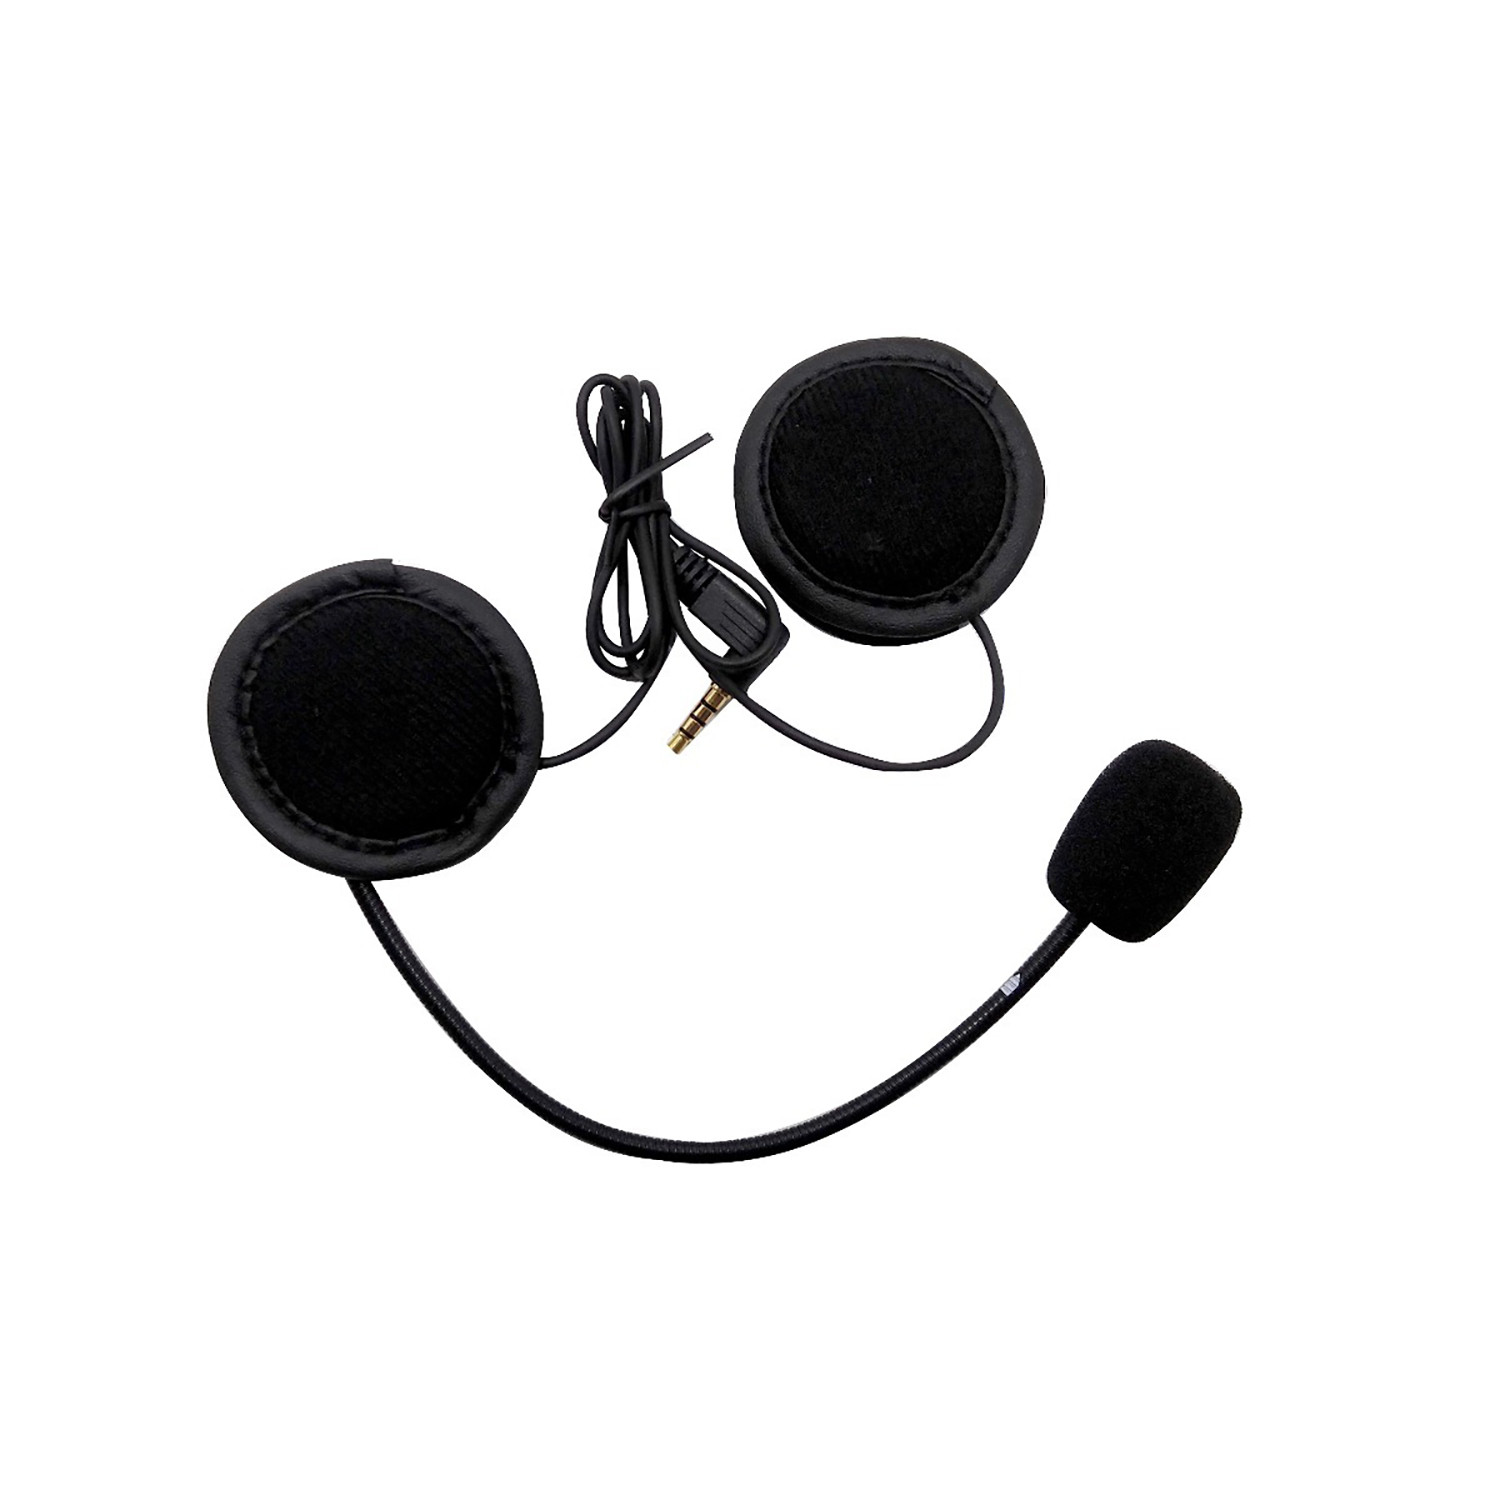 Kit Auriculares y Microfono Intercomunicador Ejeas V6  V4  E6